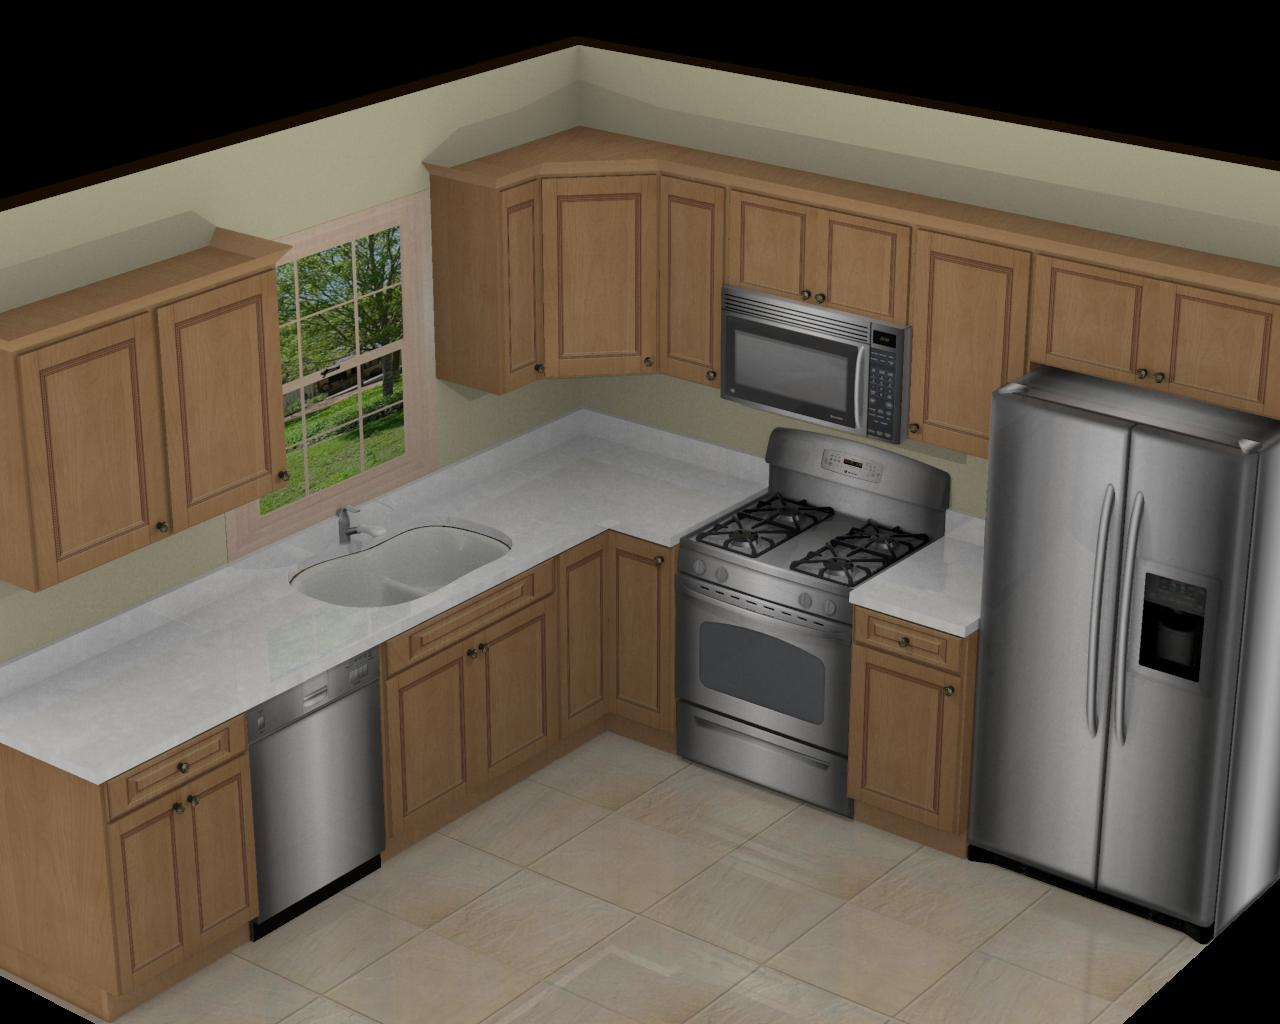 Foundation dezin decor 3d kitchen model design for Kitchen designs and layout